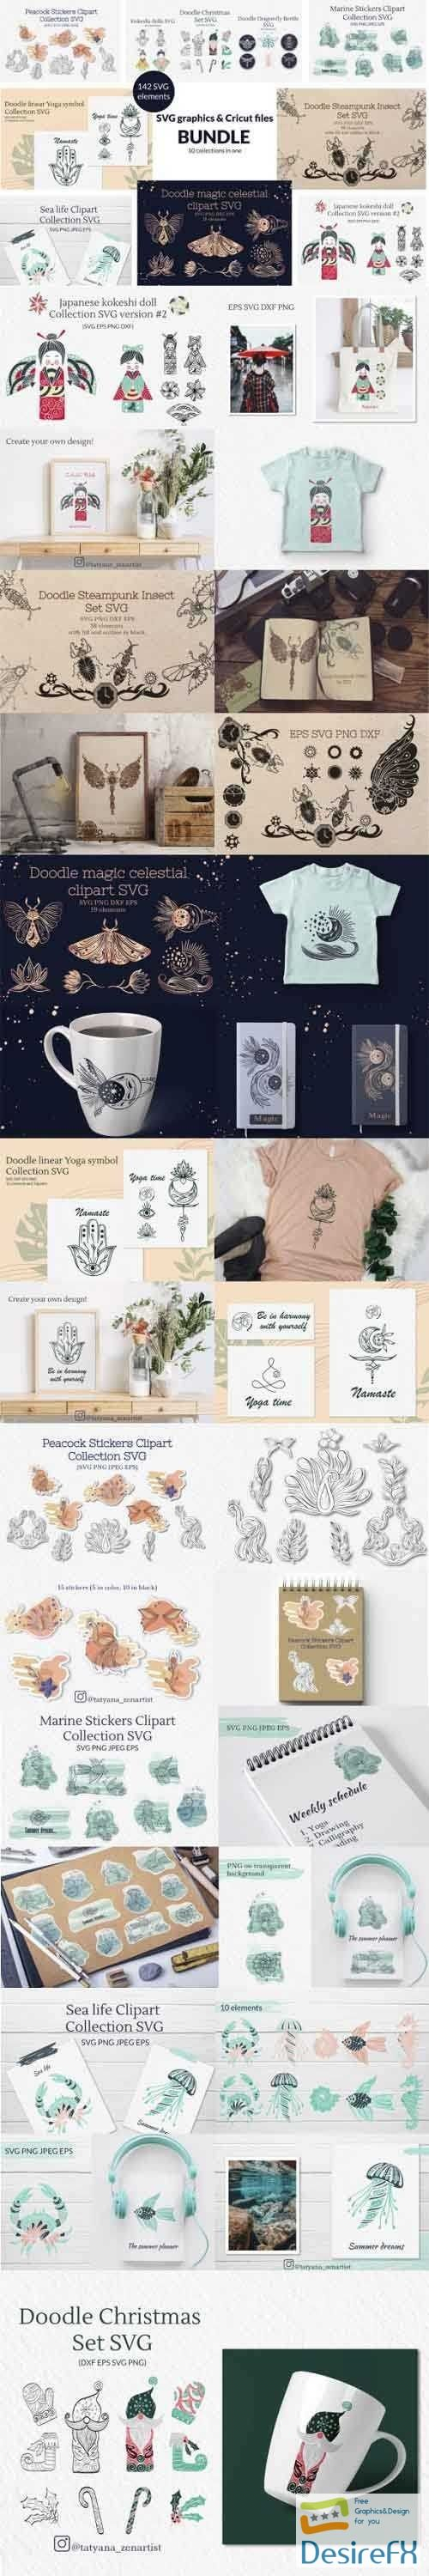 Doodle linear SVG graphics & Cricut files Bundle - 656371